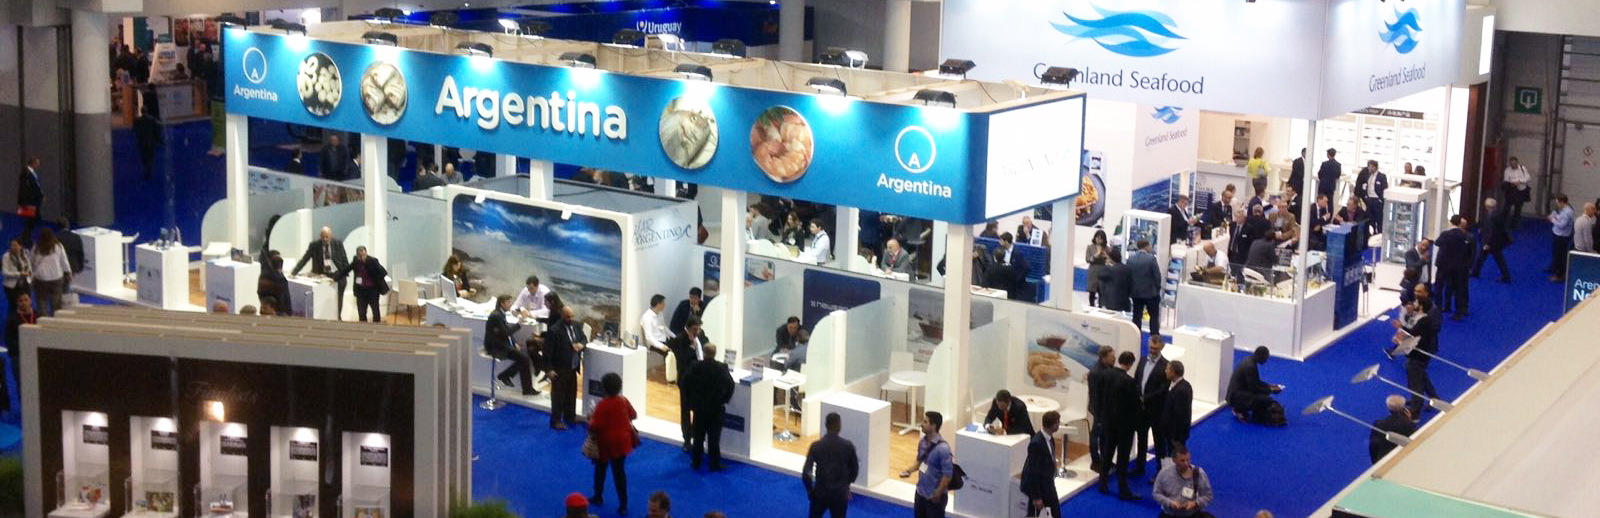 MAR ARGENTINO en la Seafood Expo Global